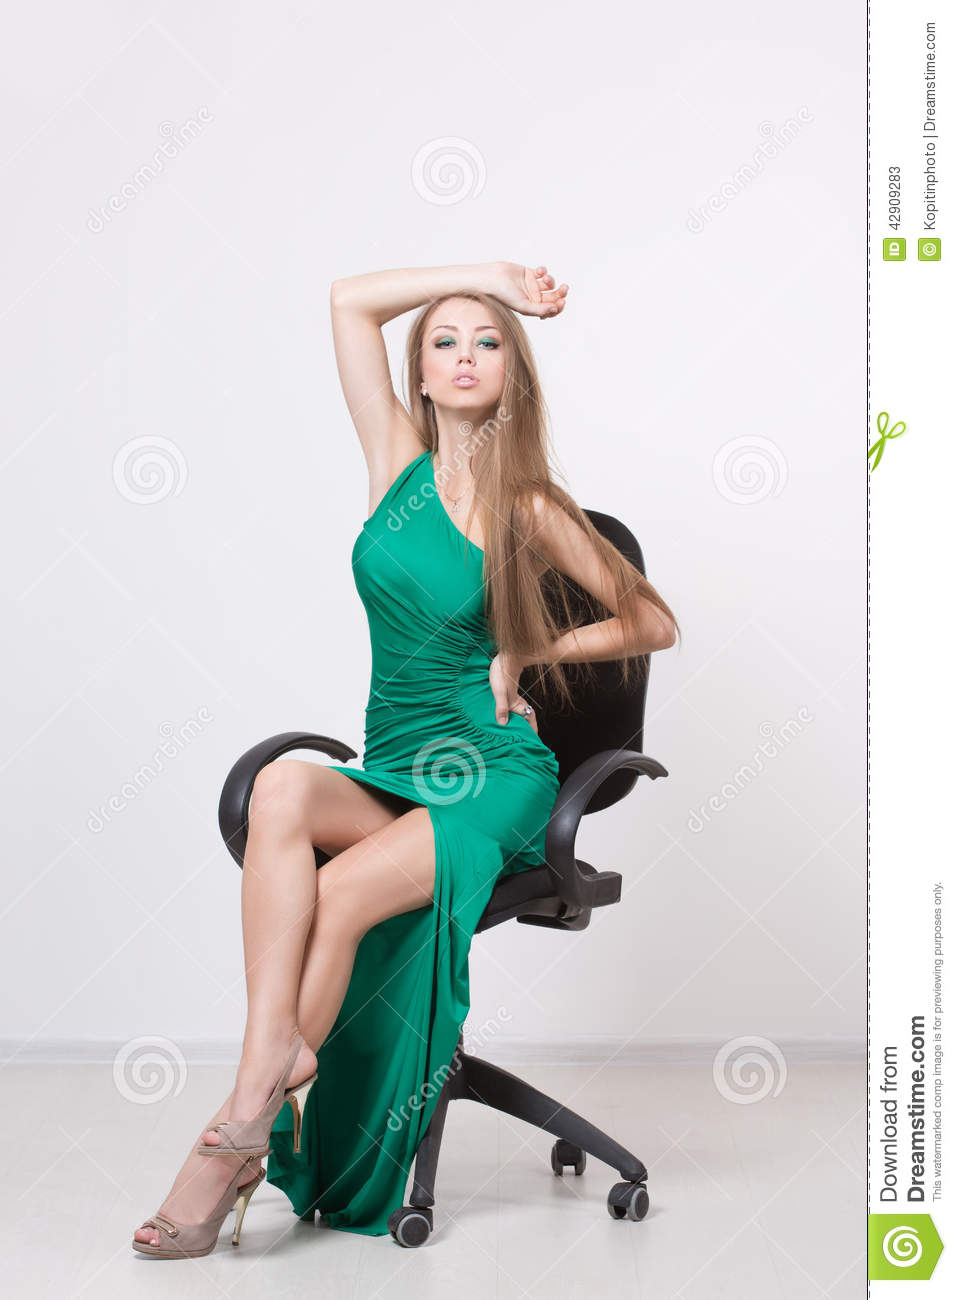 03b792668 Woman In Beauty Fashion Green Dress Stock Image - Image of evening ...